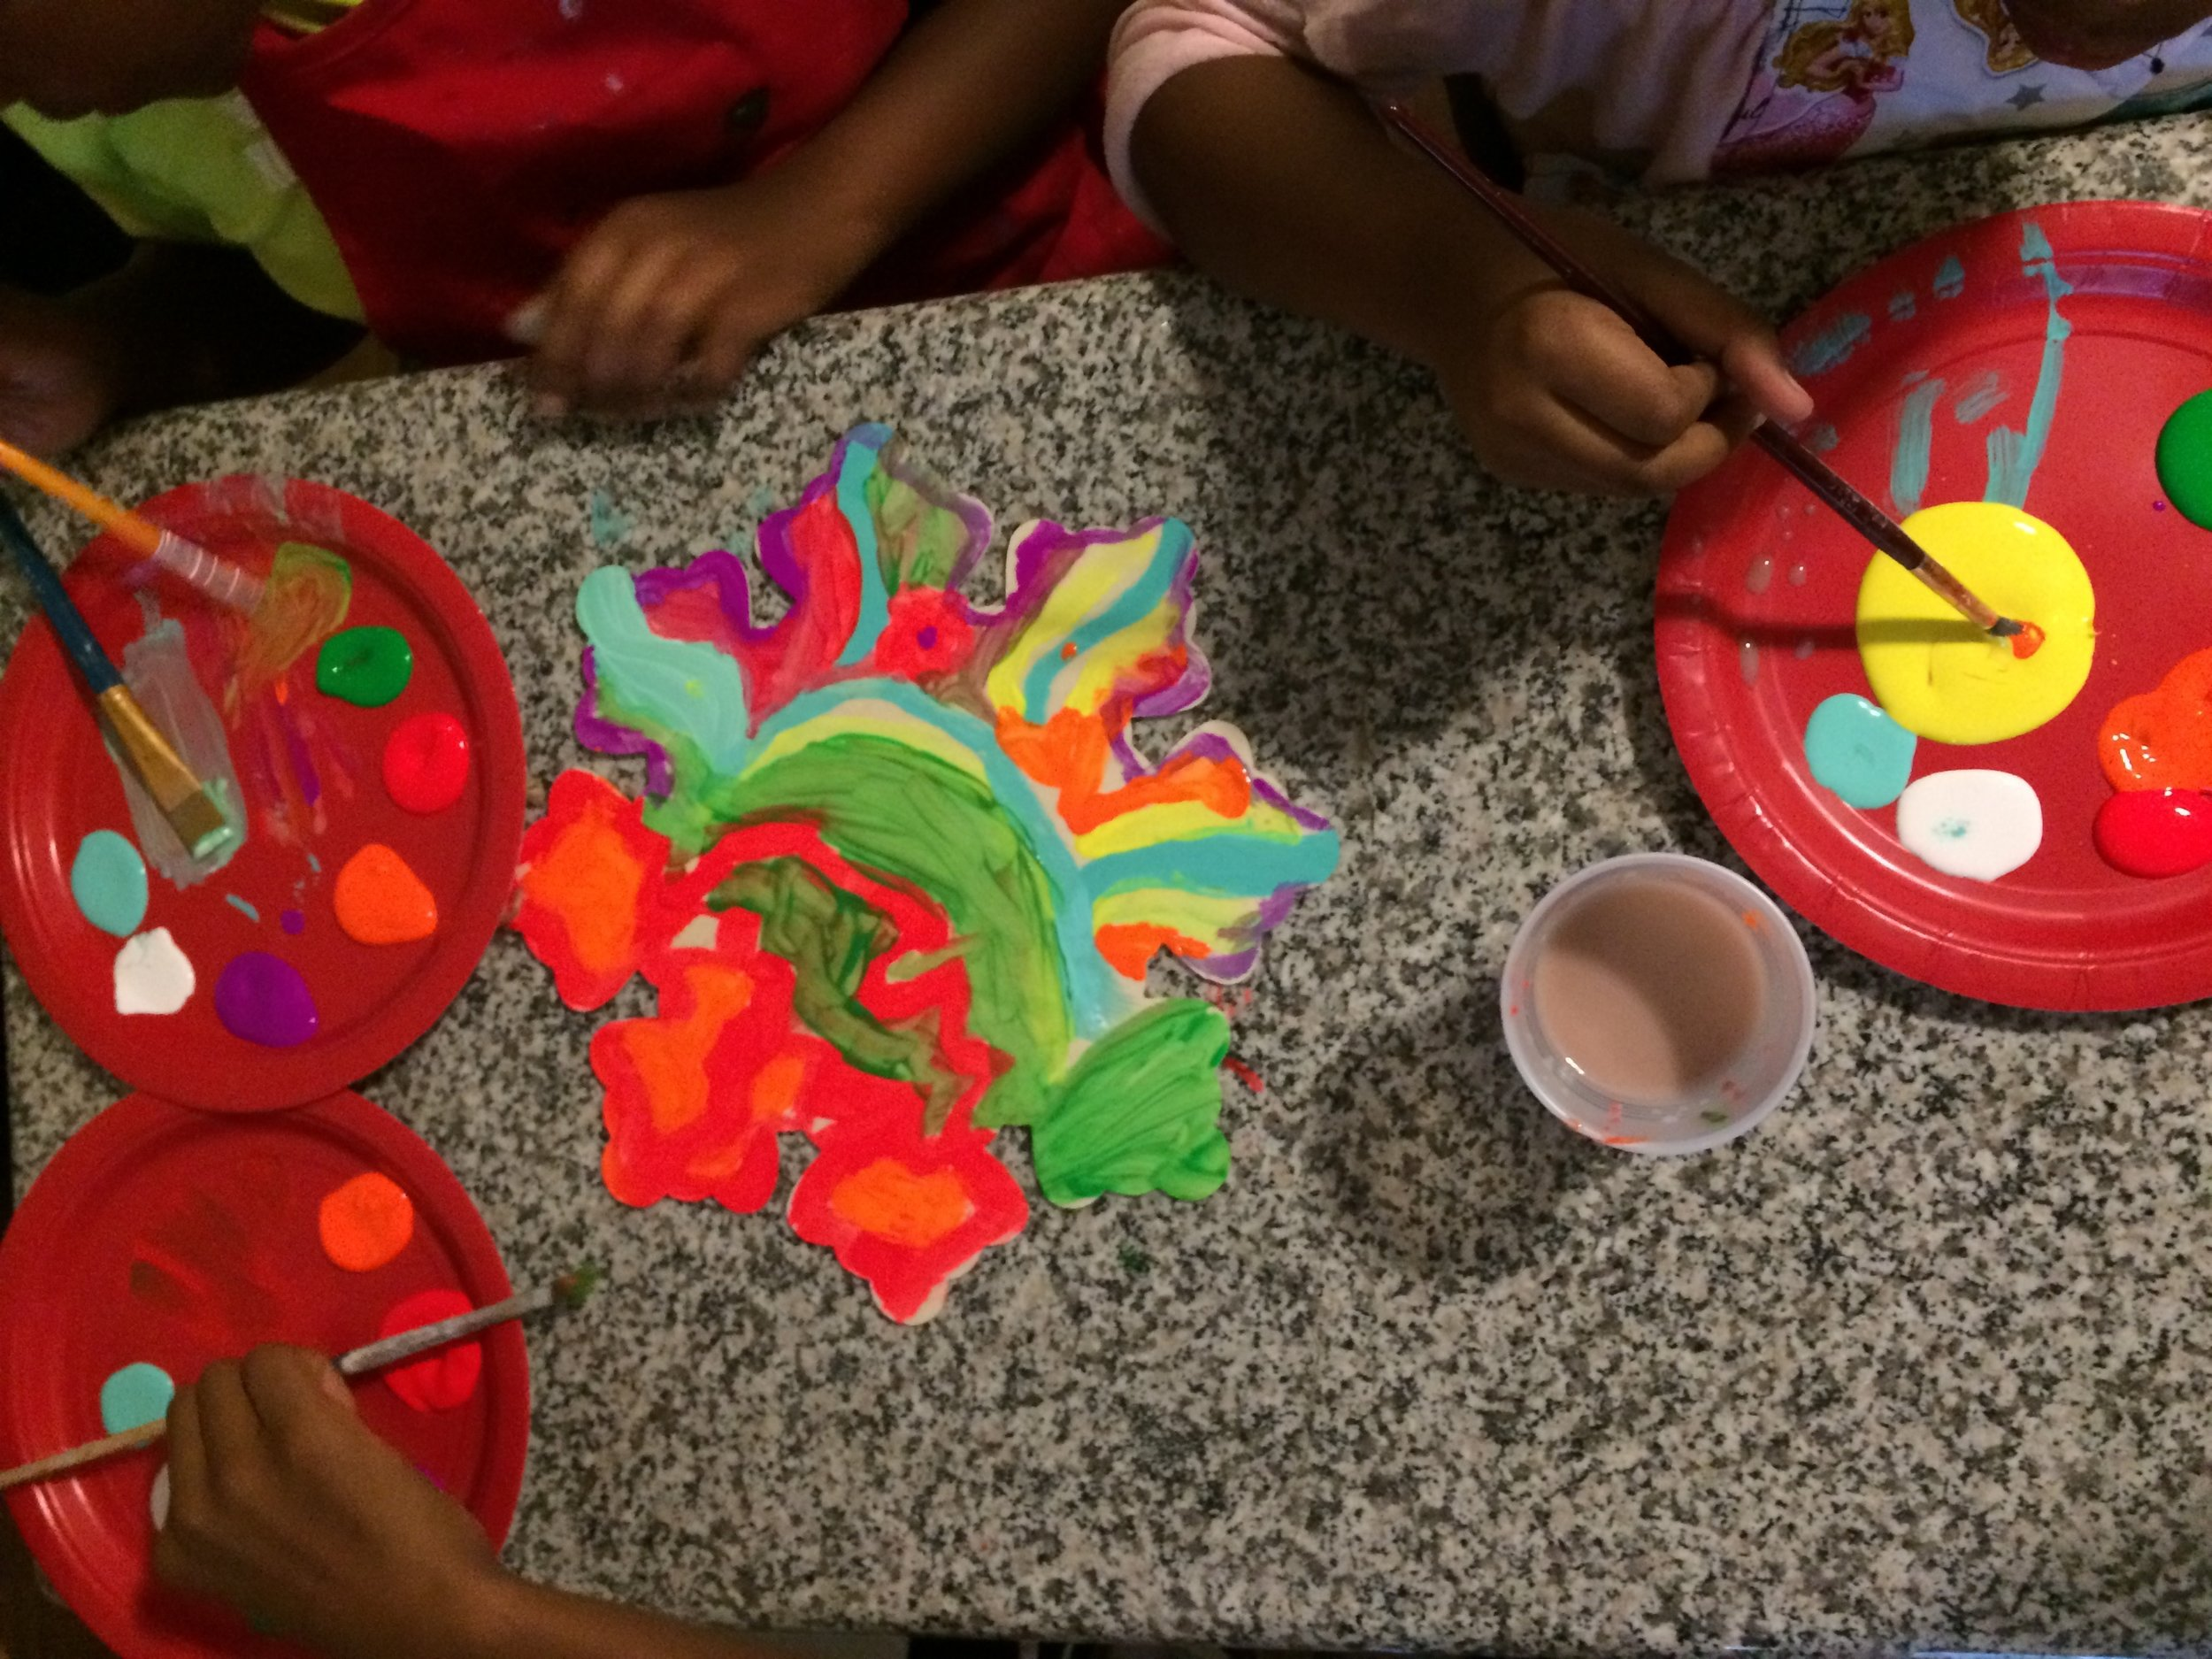 Fun with arts and crafts with Azure Community Development Arts for Inspiritus refugee children.